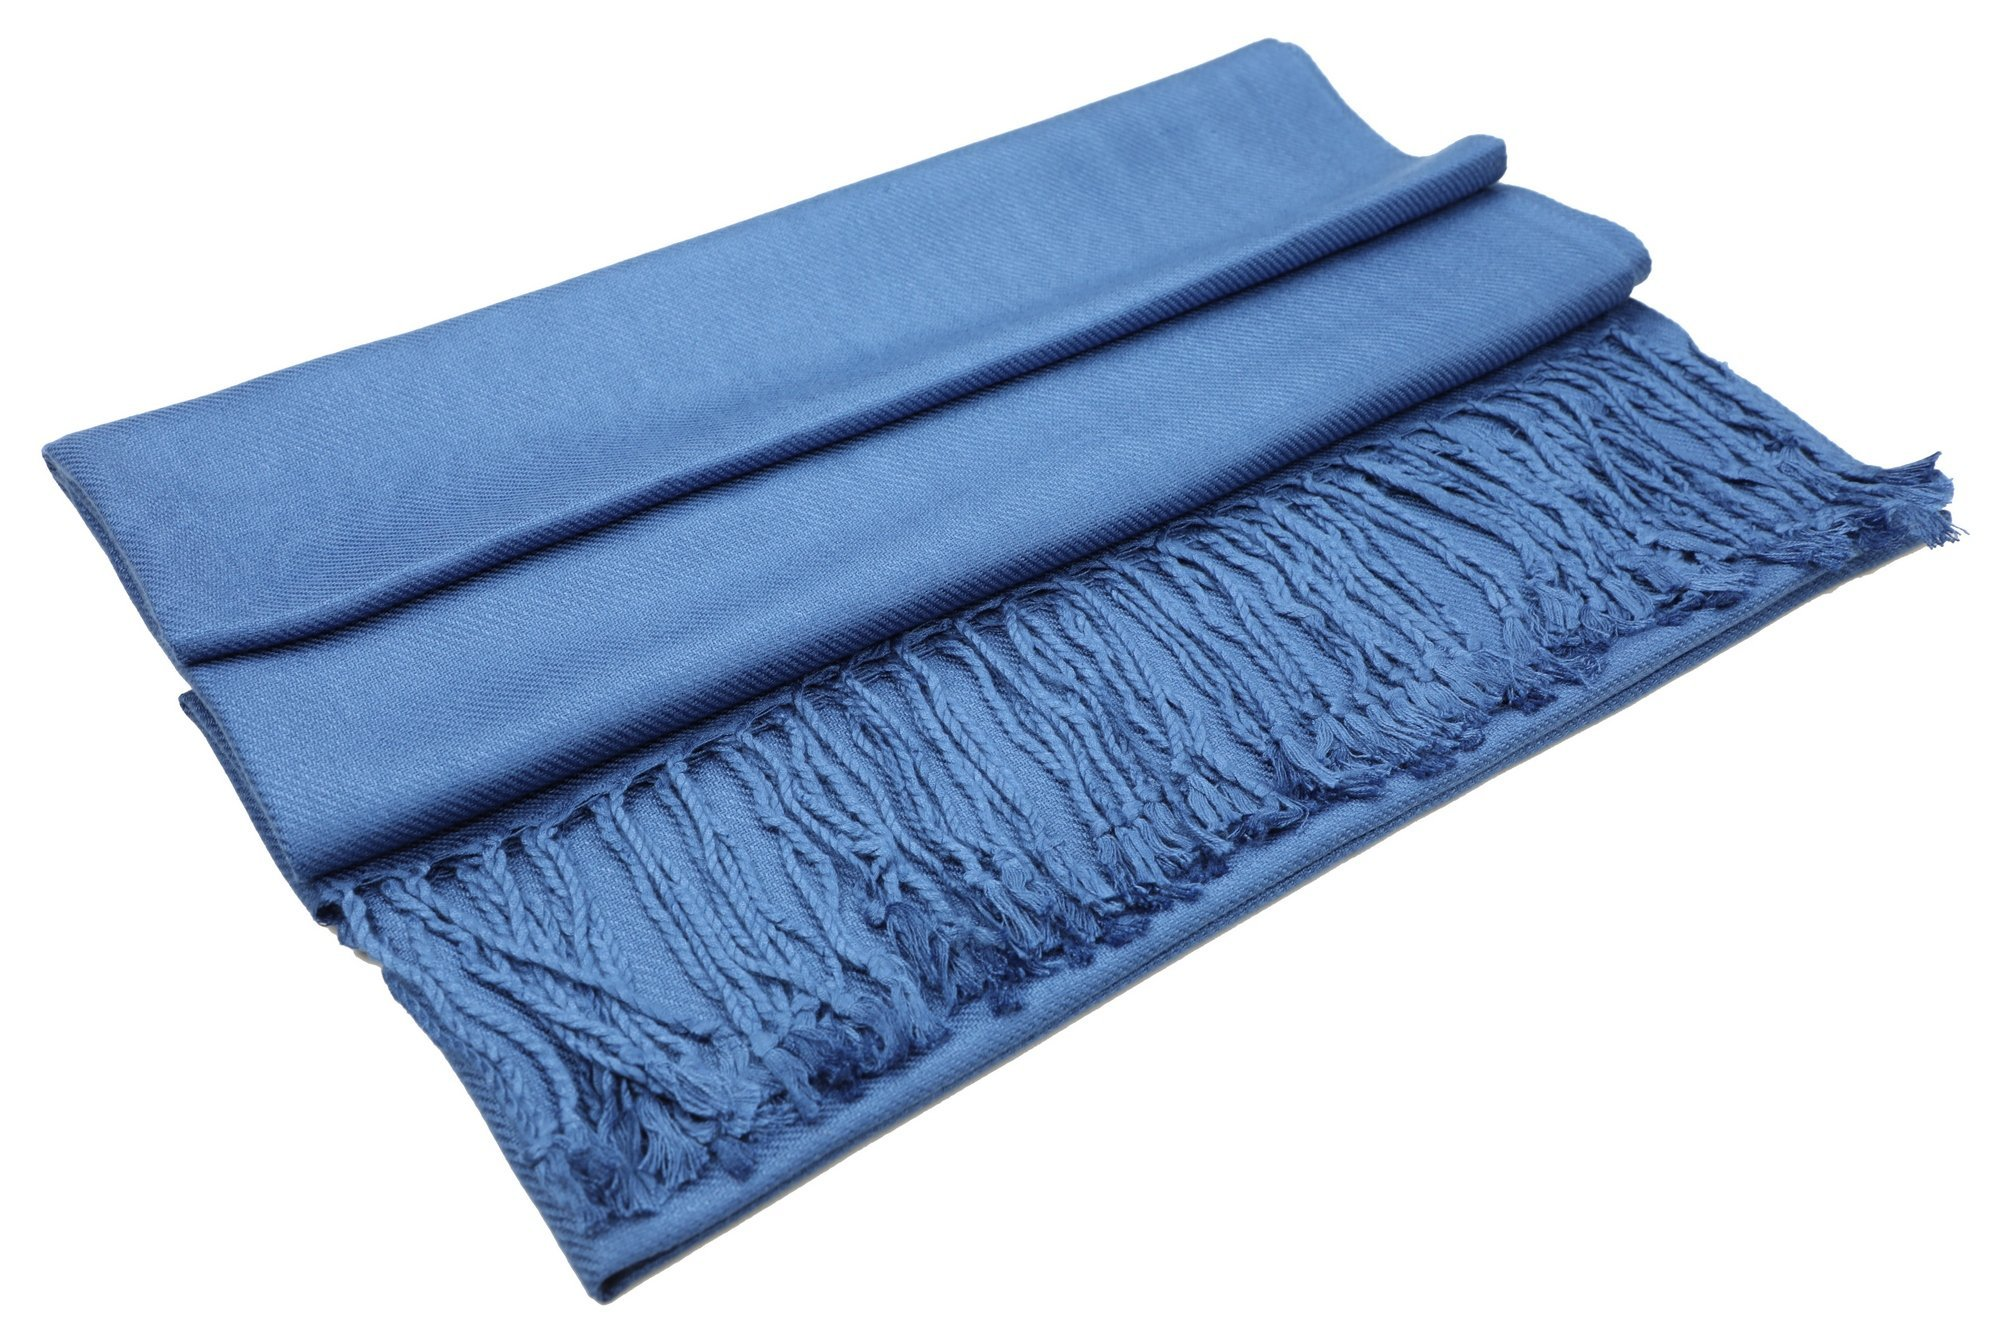 Achillea Large Soft Silky Pashmina Shawl Wrap Scarf in Solid Colors (Cobalt Blue) by Achillea (Image #4)